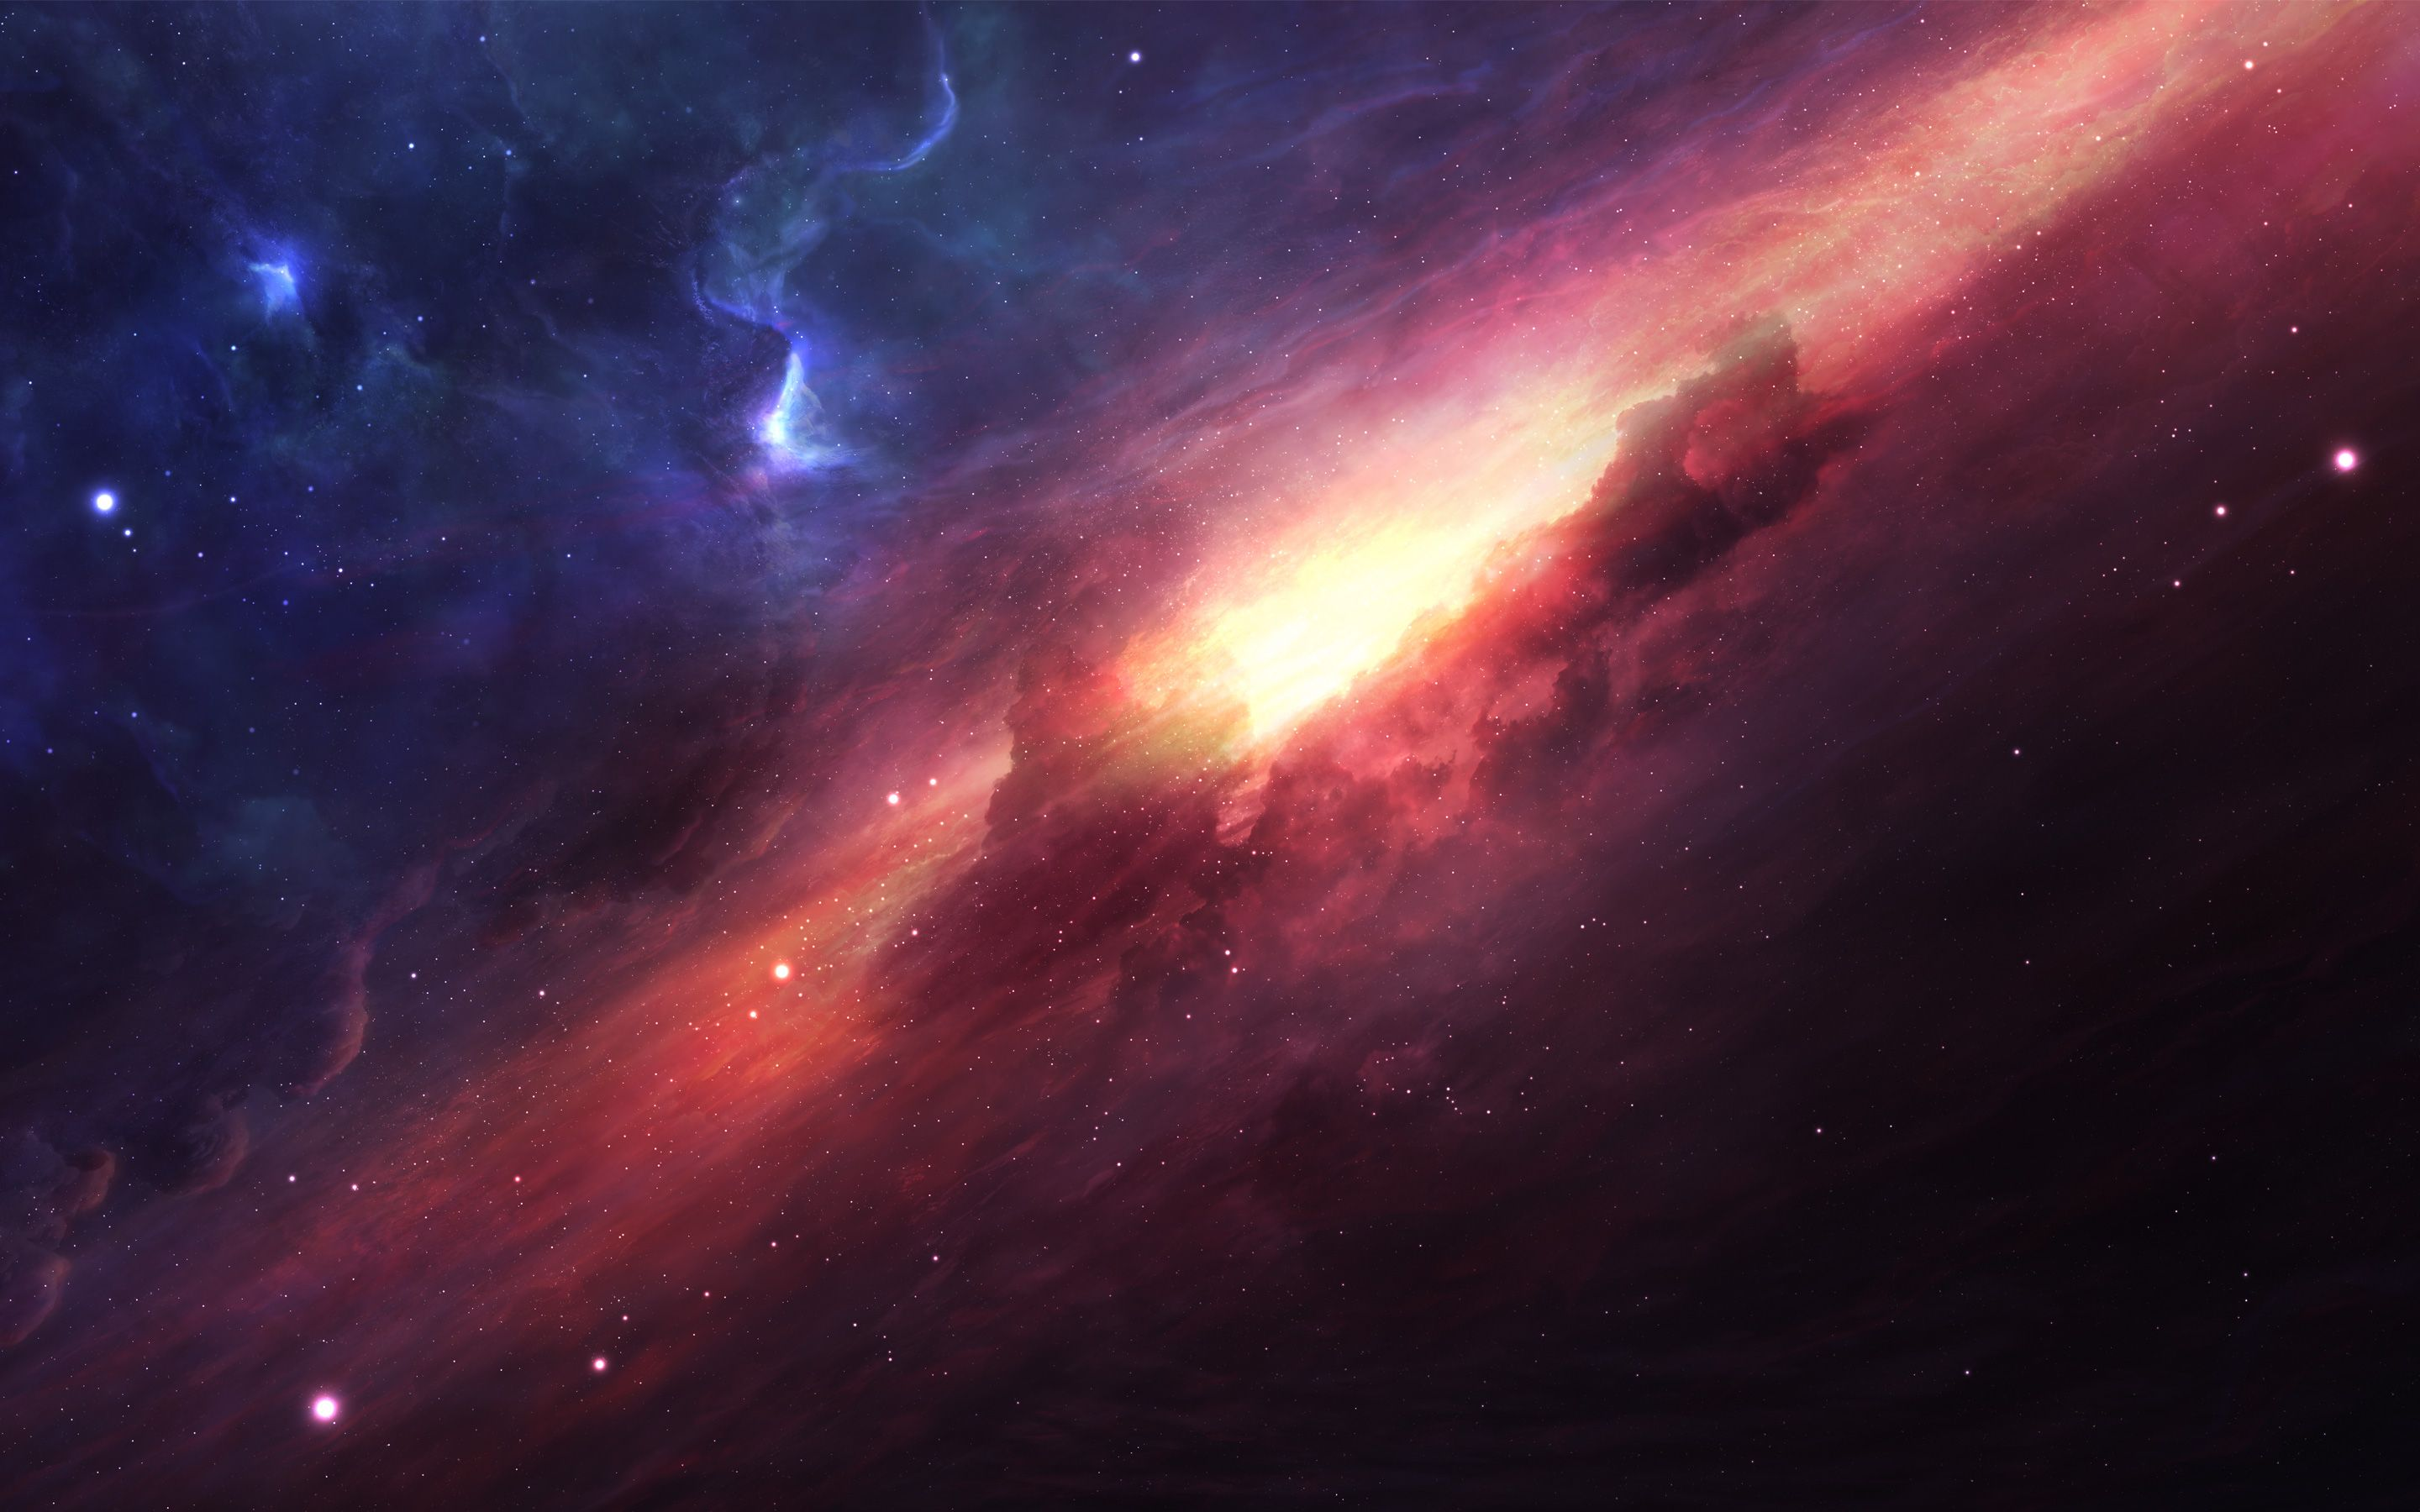 Digital Space Universe 4k 8k Hd Wallpaper Background Hd Wallpaper Galaxy Wallpaper Wallpaper Pc